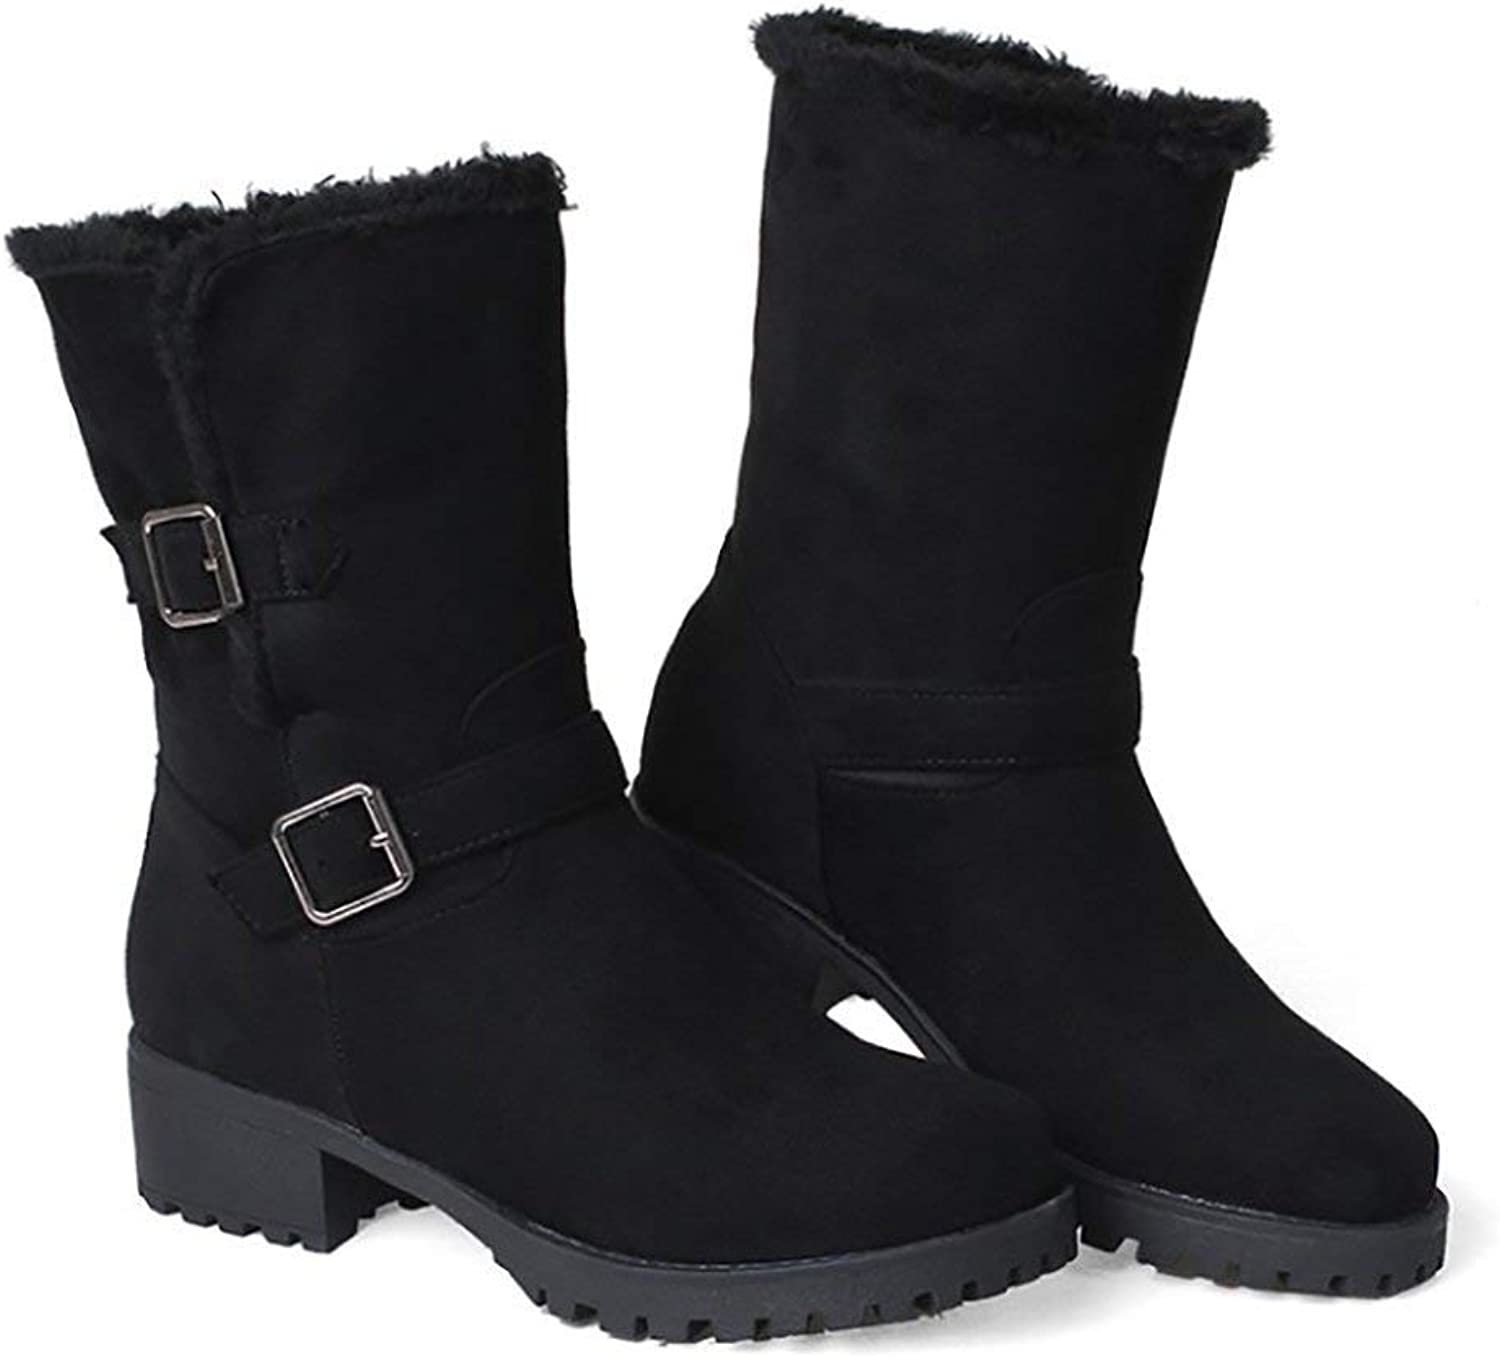 Women's Winter Low Heel Snow Boots Buckles Warm Cozy Suede Mid Calf Ankle Boots(0 0)